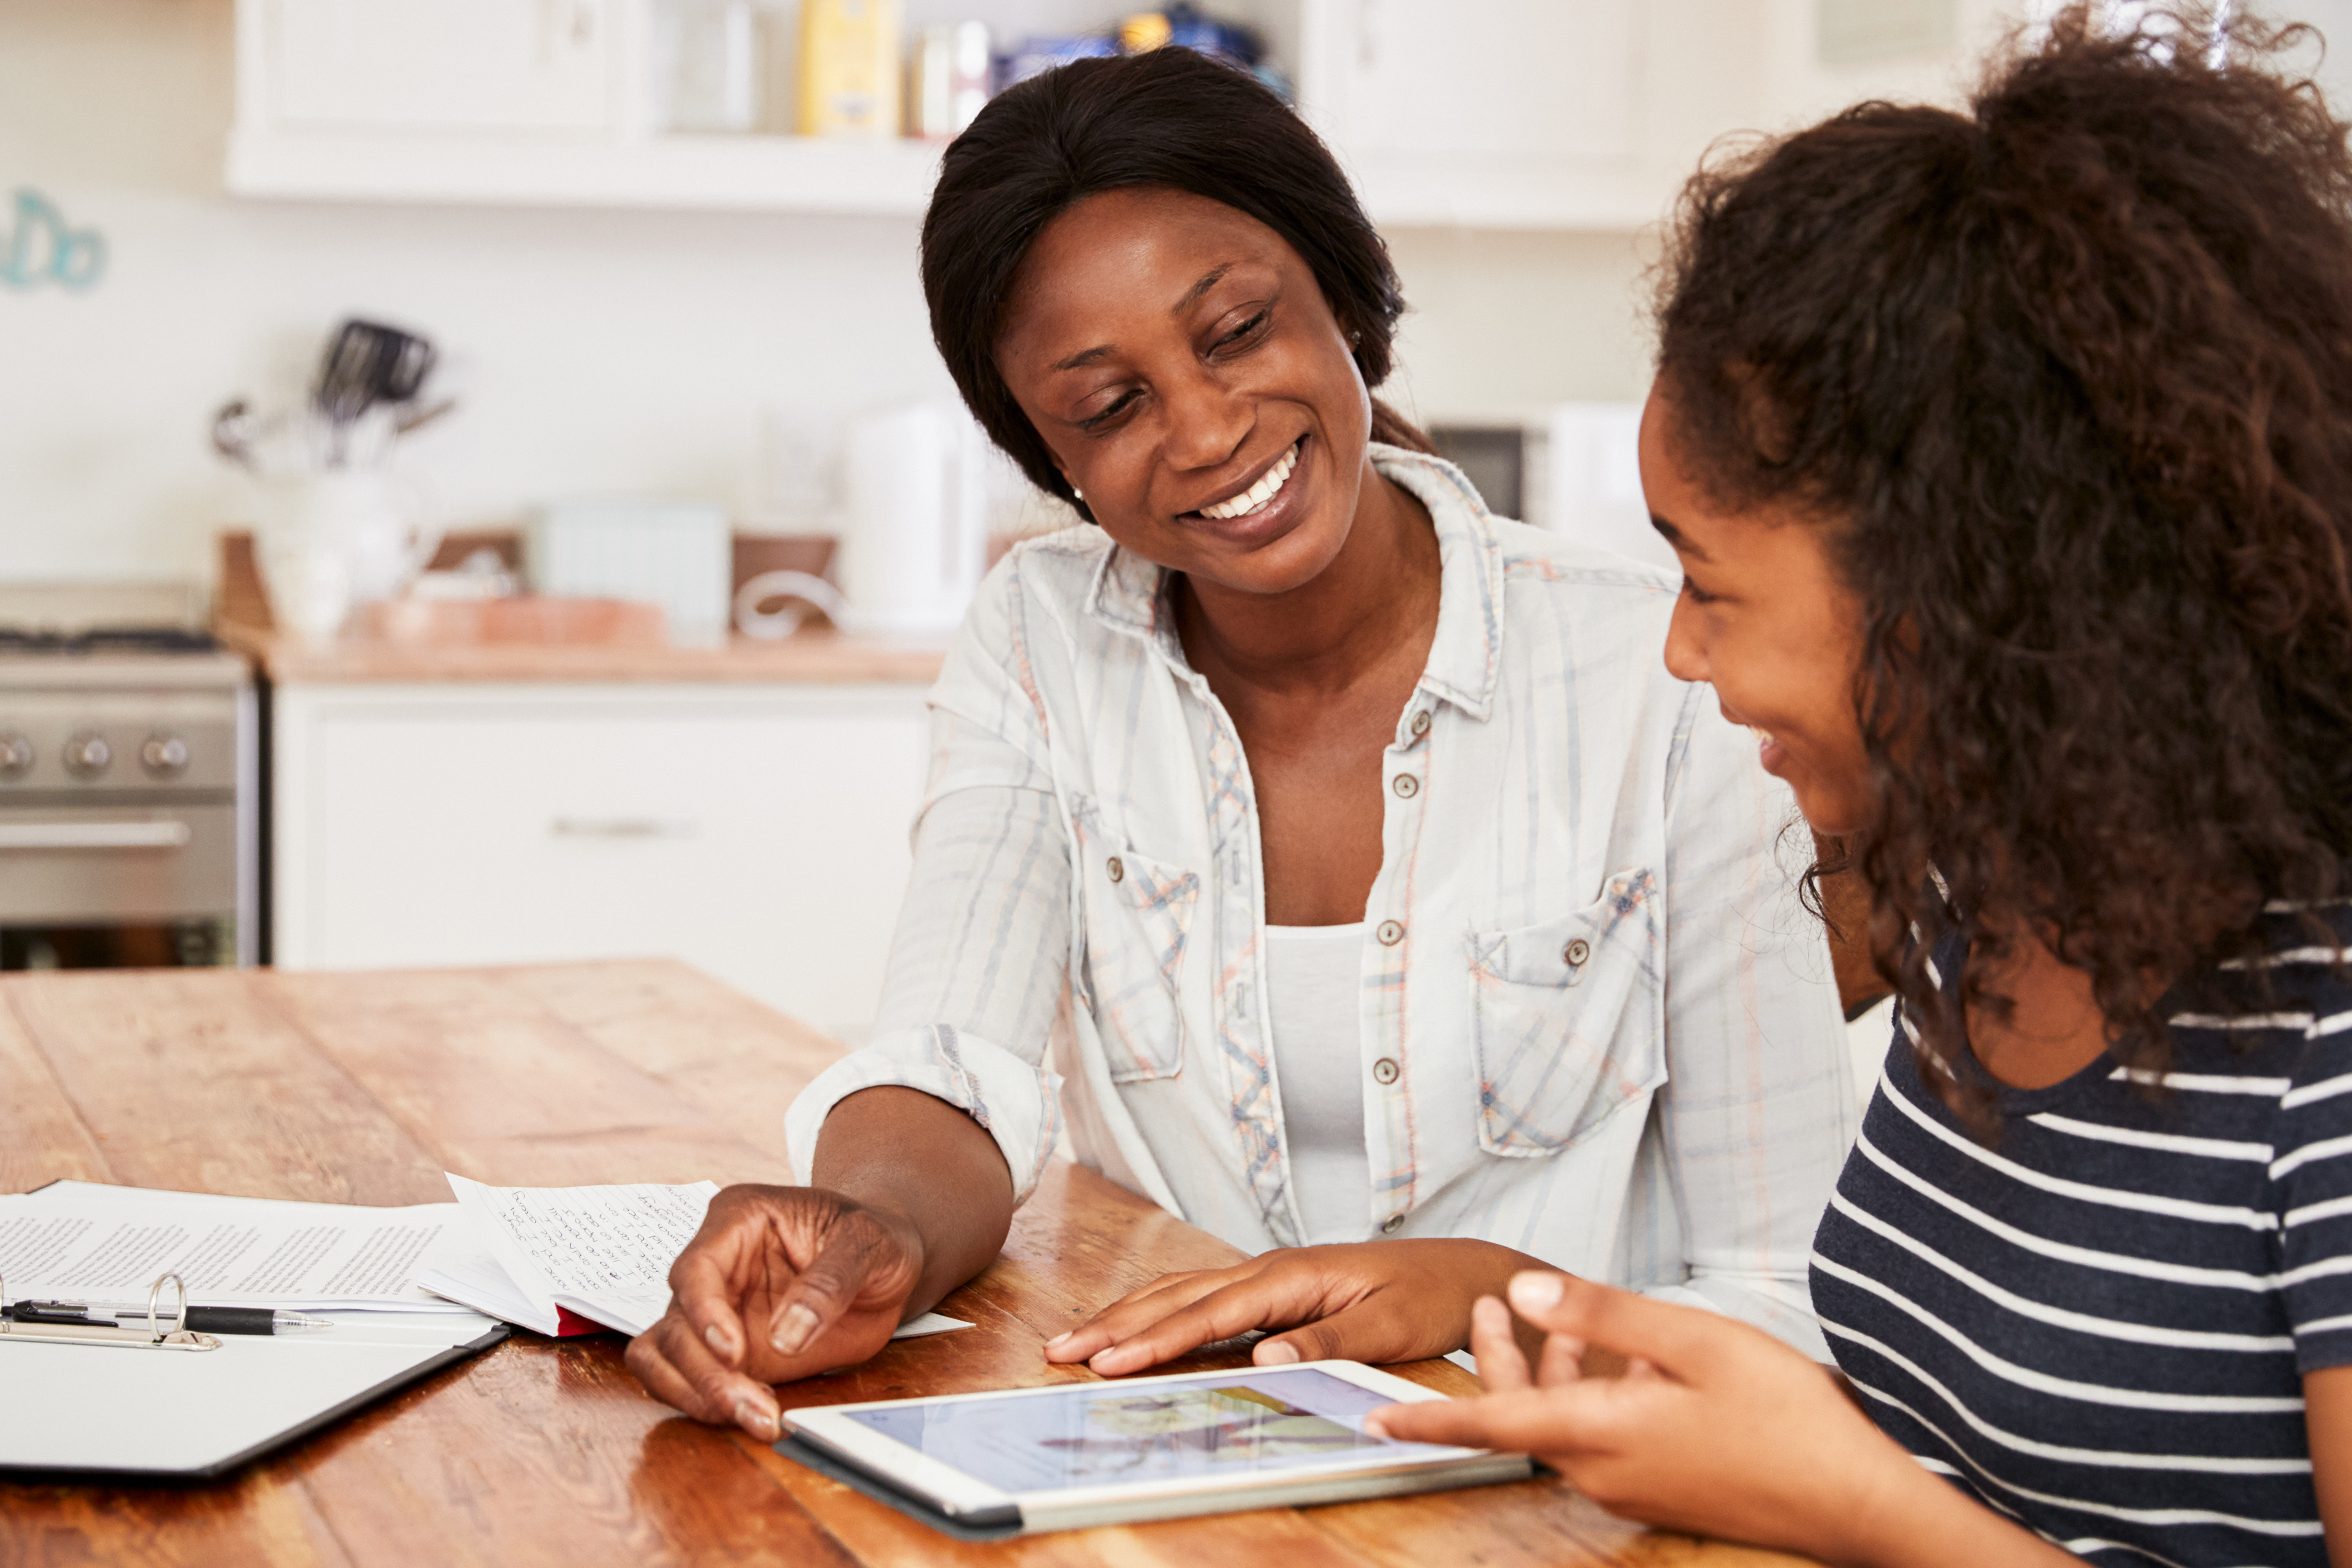 Parent and child smiling and working on a tablet